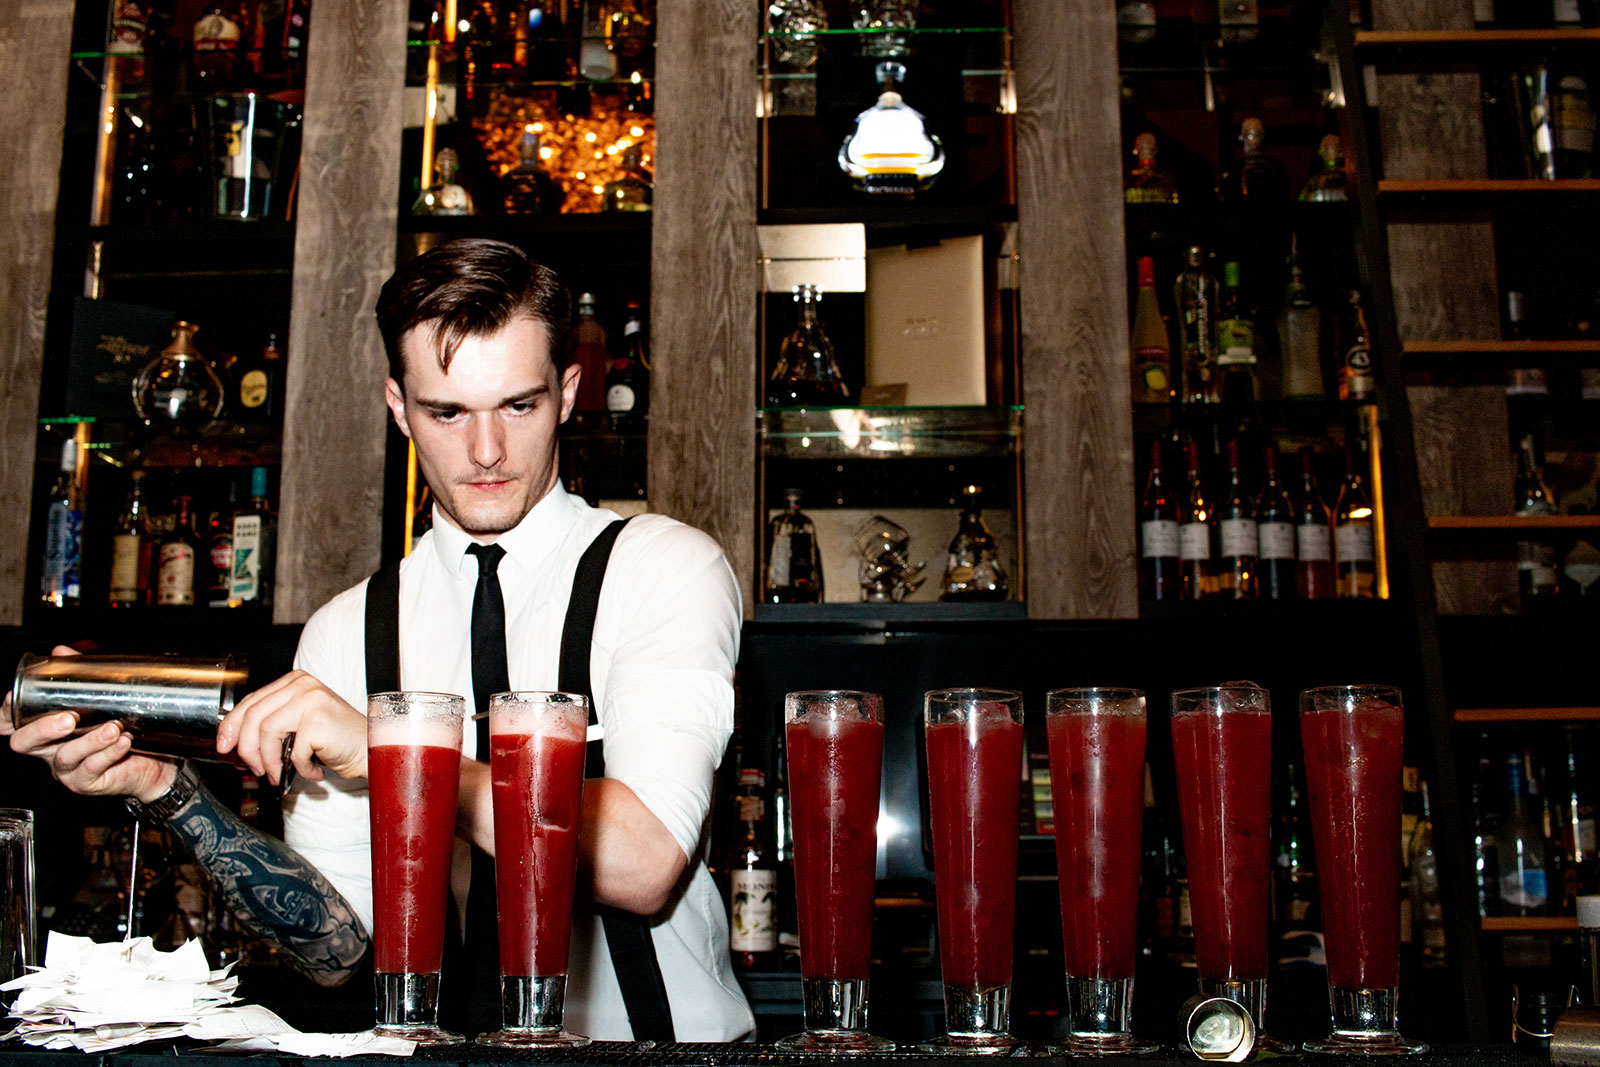 Barman pouring seven red cocktails on bar